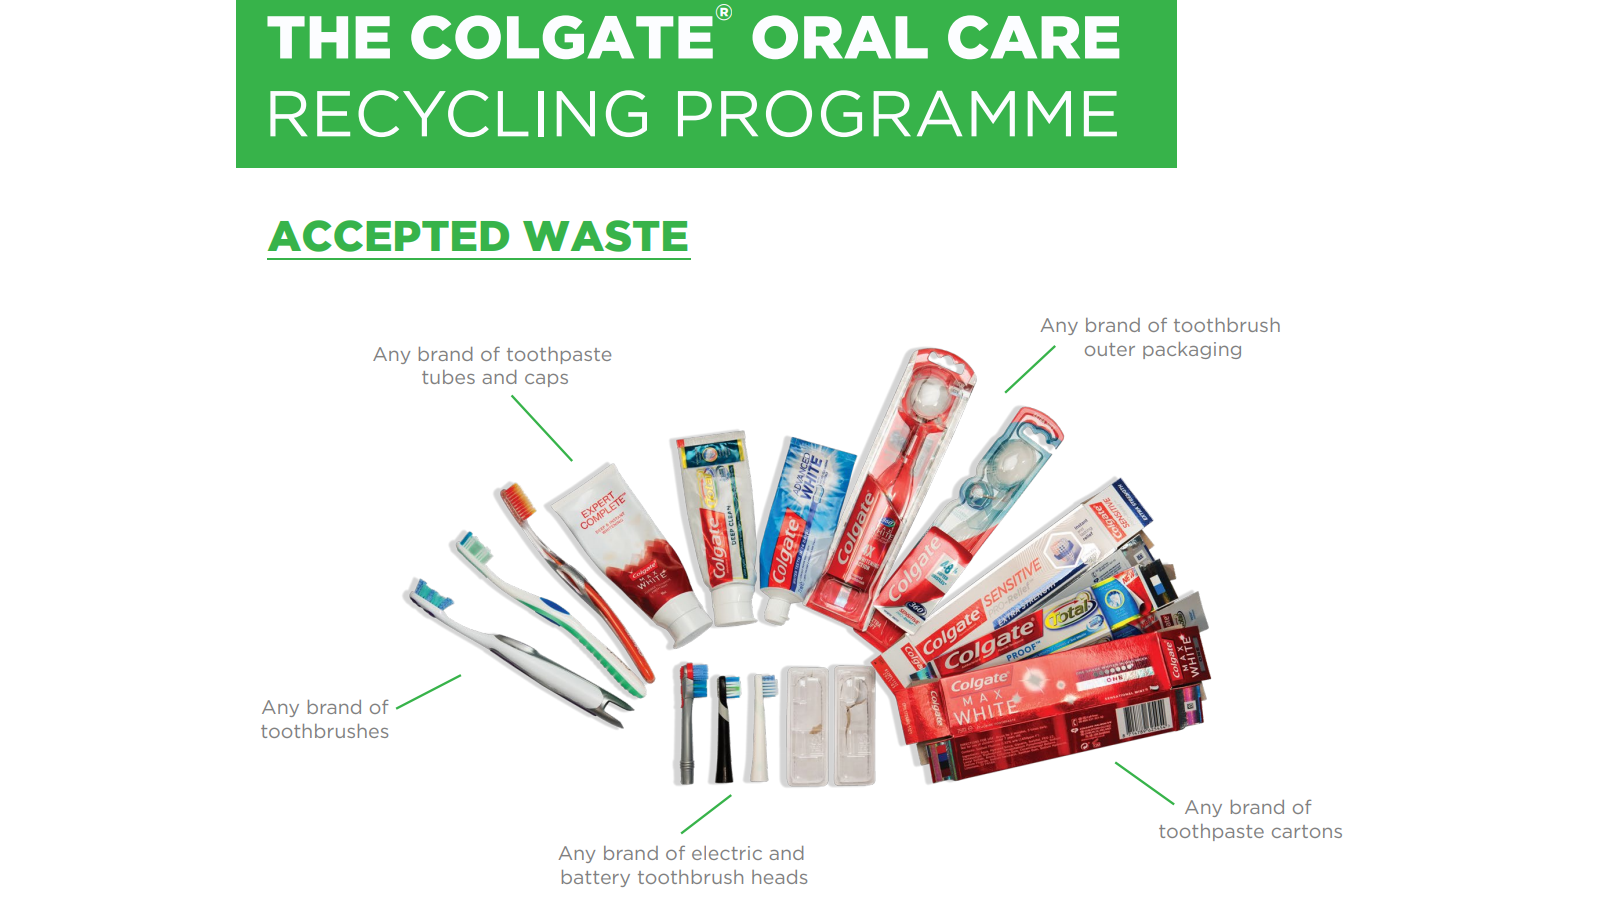 Colgate recycling at Chartwell Dental Care